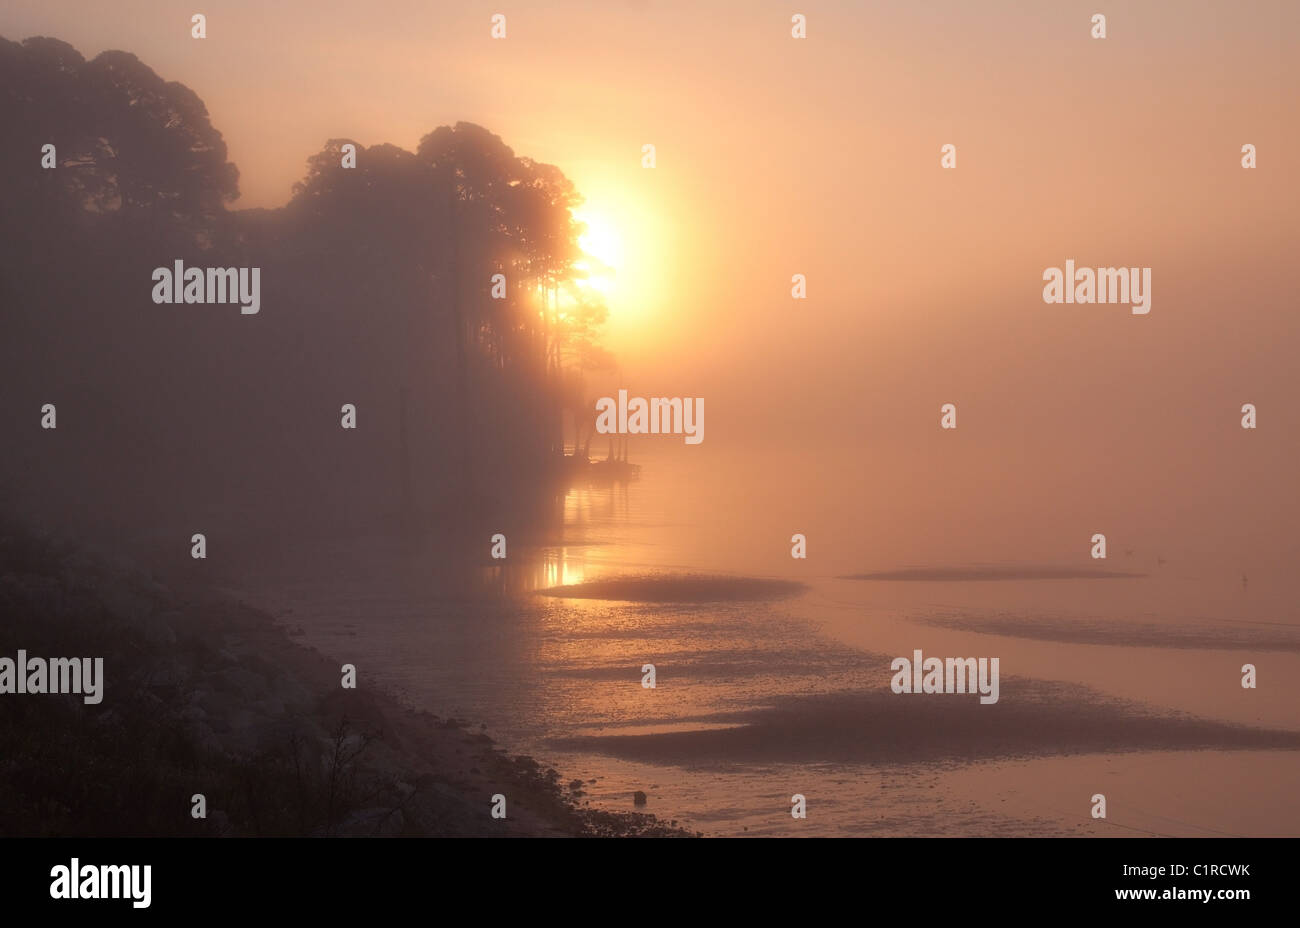 Early morning sun breaks through fog along the 'forgotten coast' west of Apalachicola, Florida, USA - Stock Image